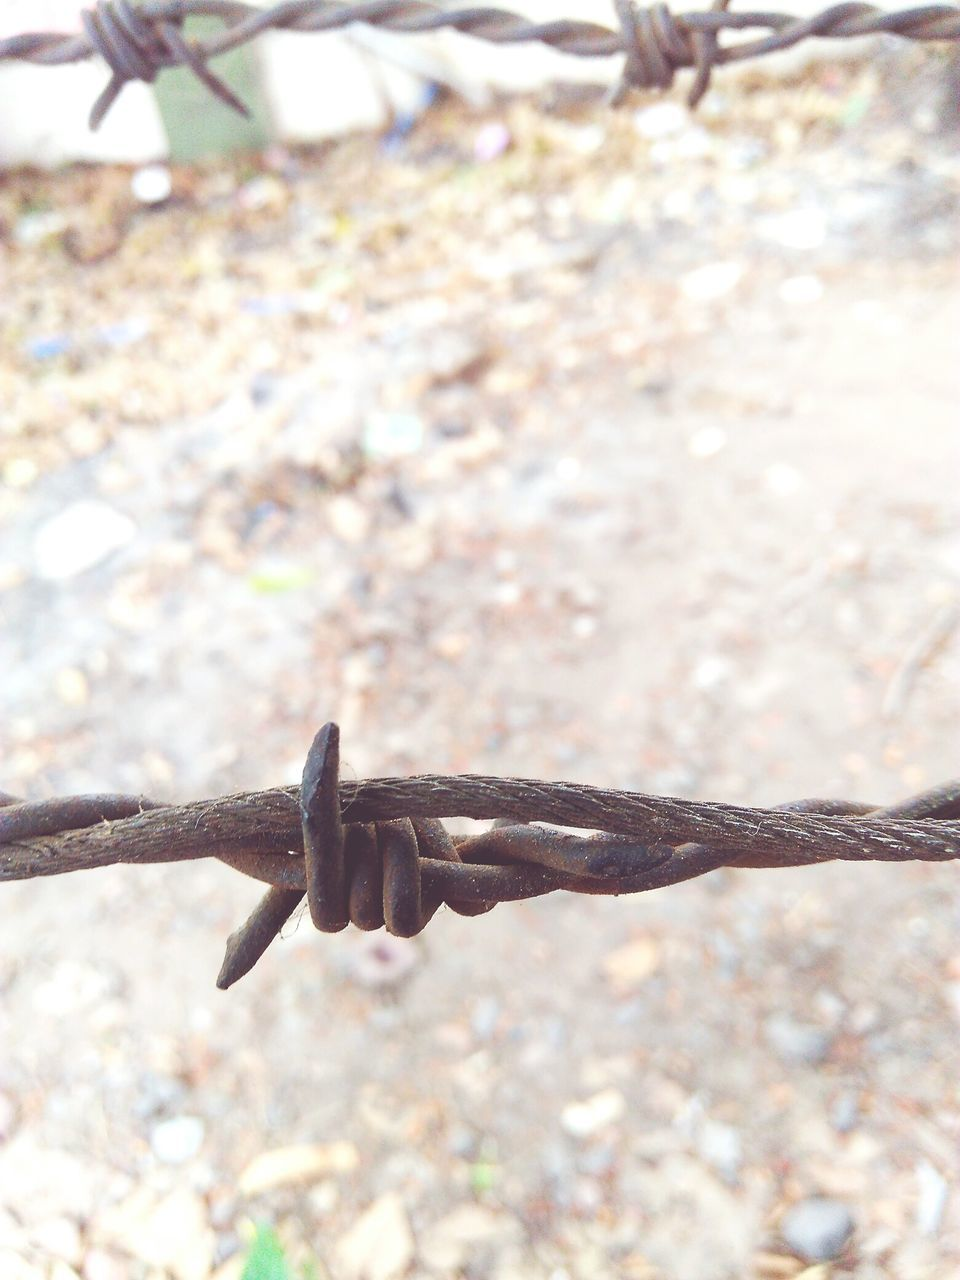 metal, strength, day, safety, focus on foreground, close-up, protection, outdoors, barbed wire, no people, sunlight, rusty